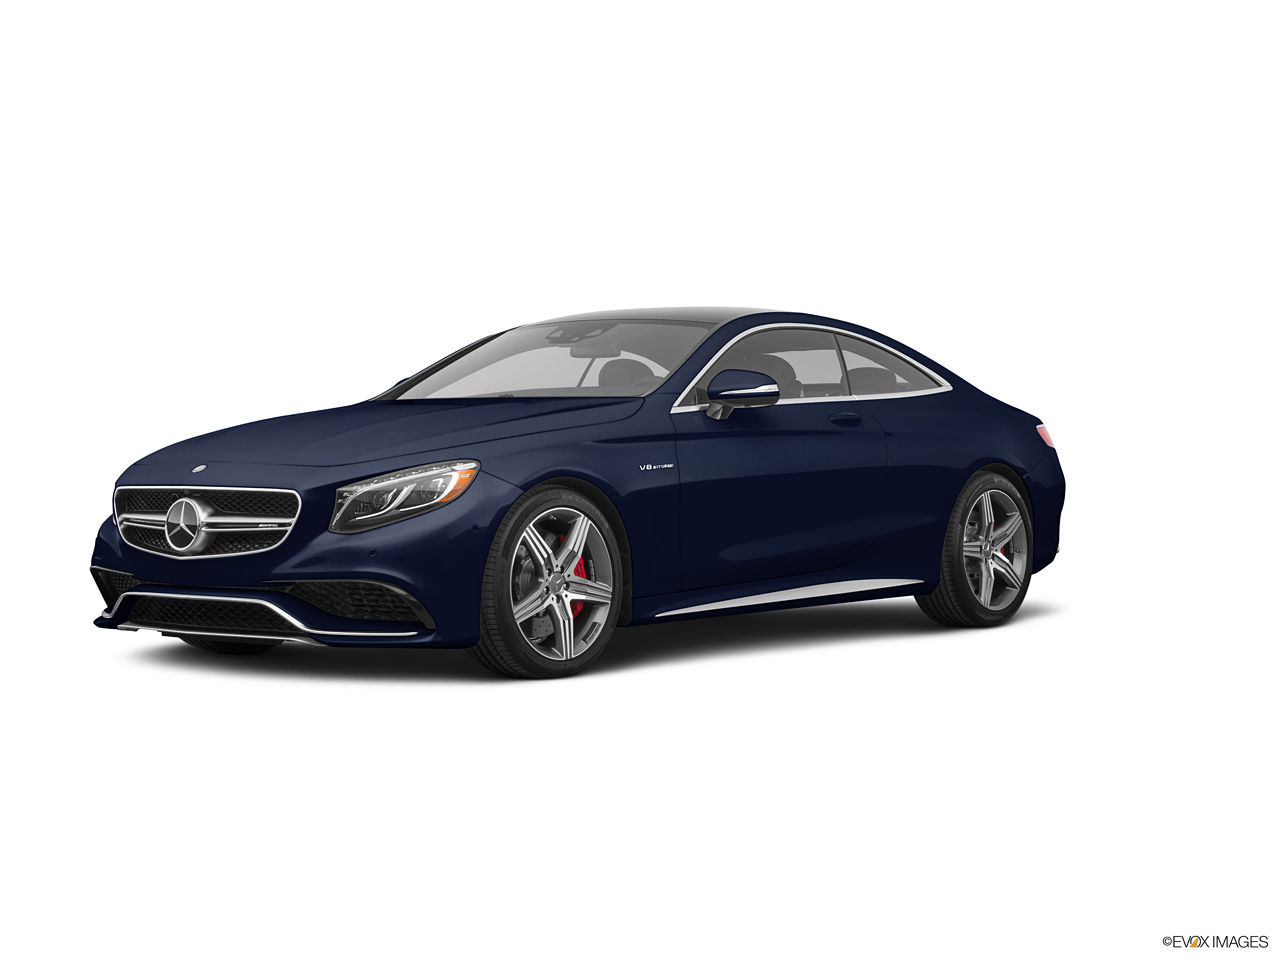 Car pictures list for mercedes benz s 63 amg coupe 2018 5 for Mercedes benz qatar